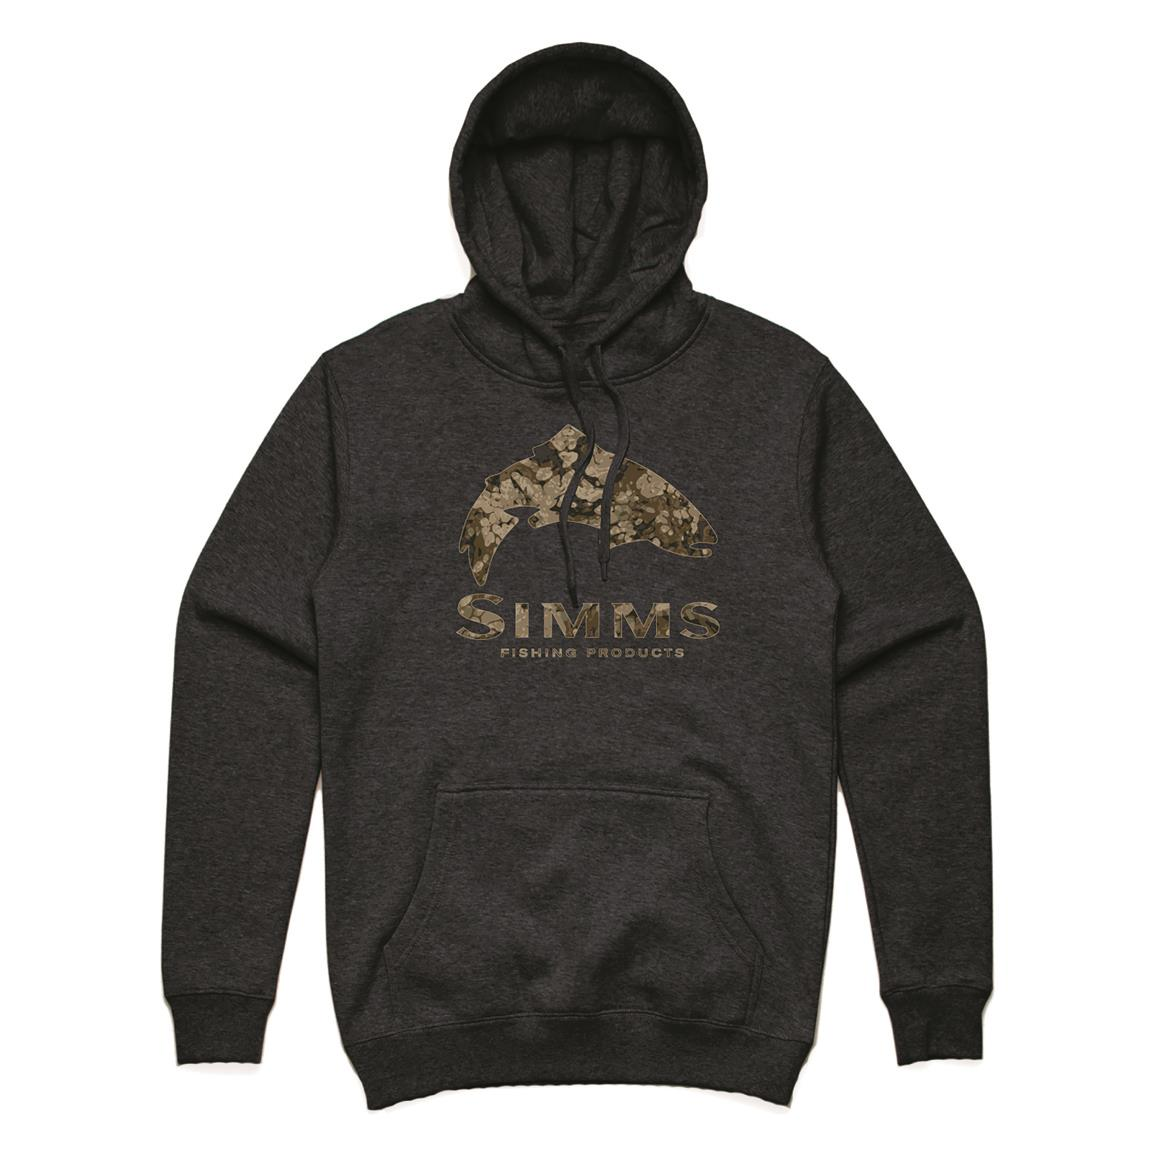 Simms Men's Logo Fish Hoodie, Charcoal Heather